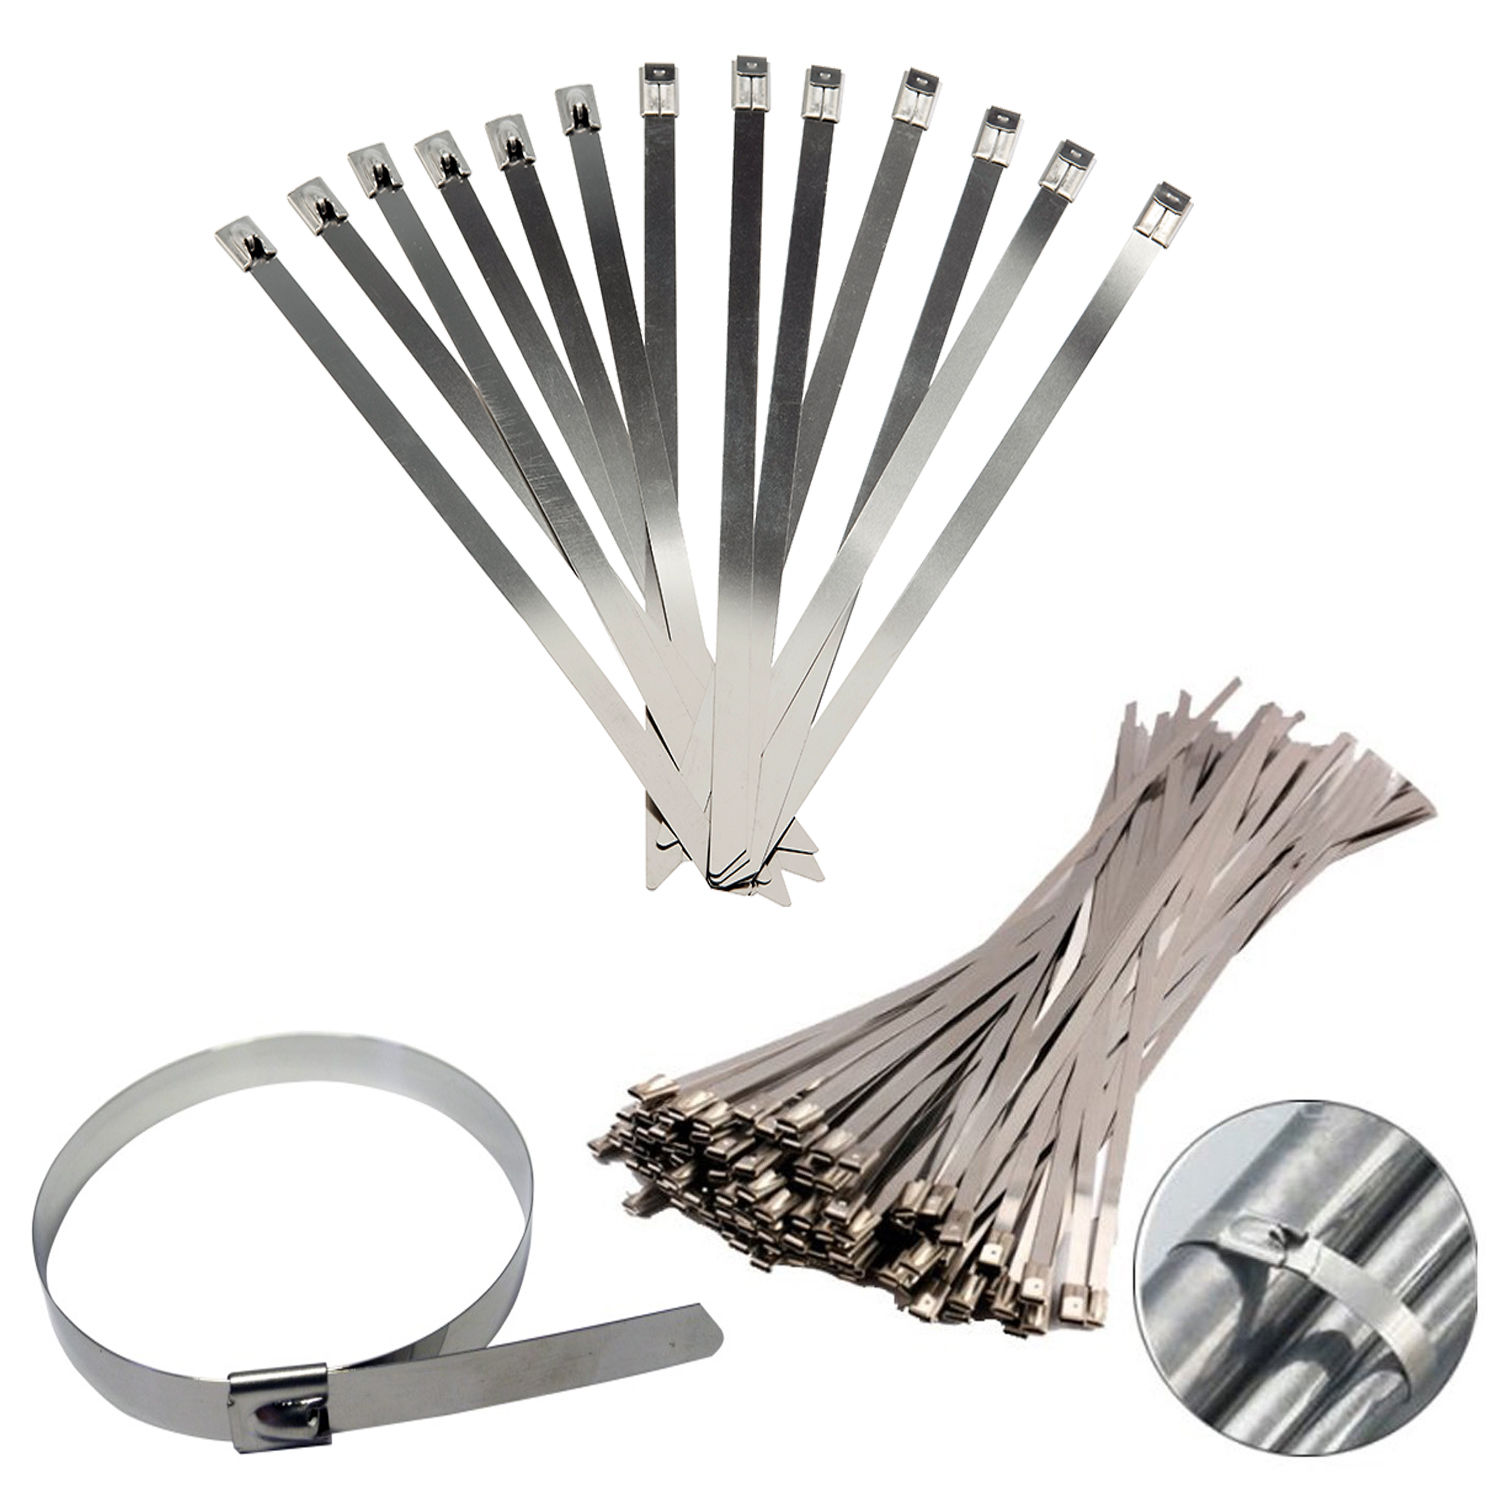 10pcs-stainless-steel-metal-cable-ties-tie-zip-wrap-exhaust-heat-straps-induction-pipe